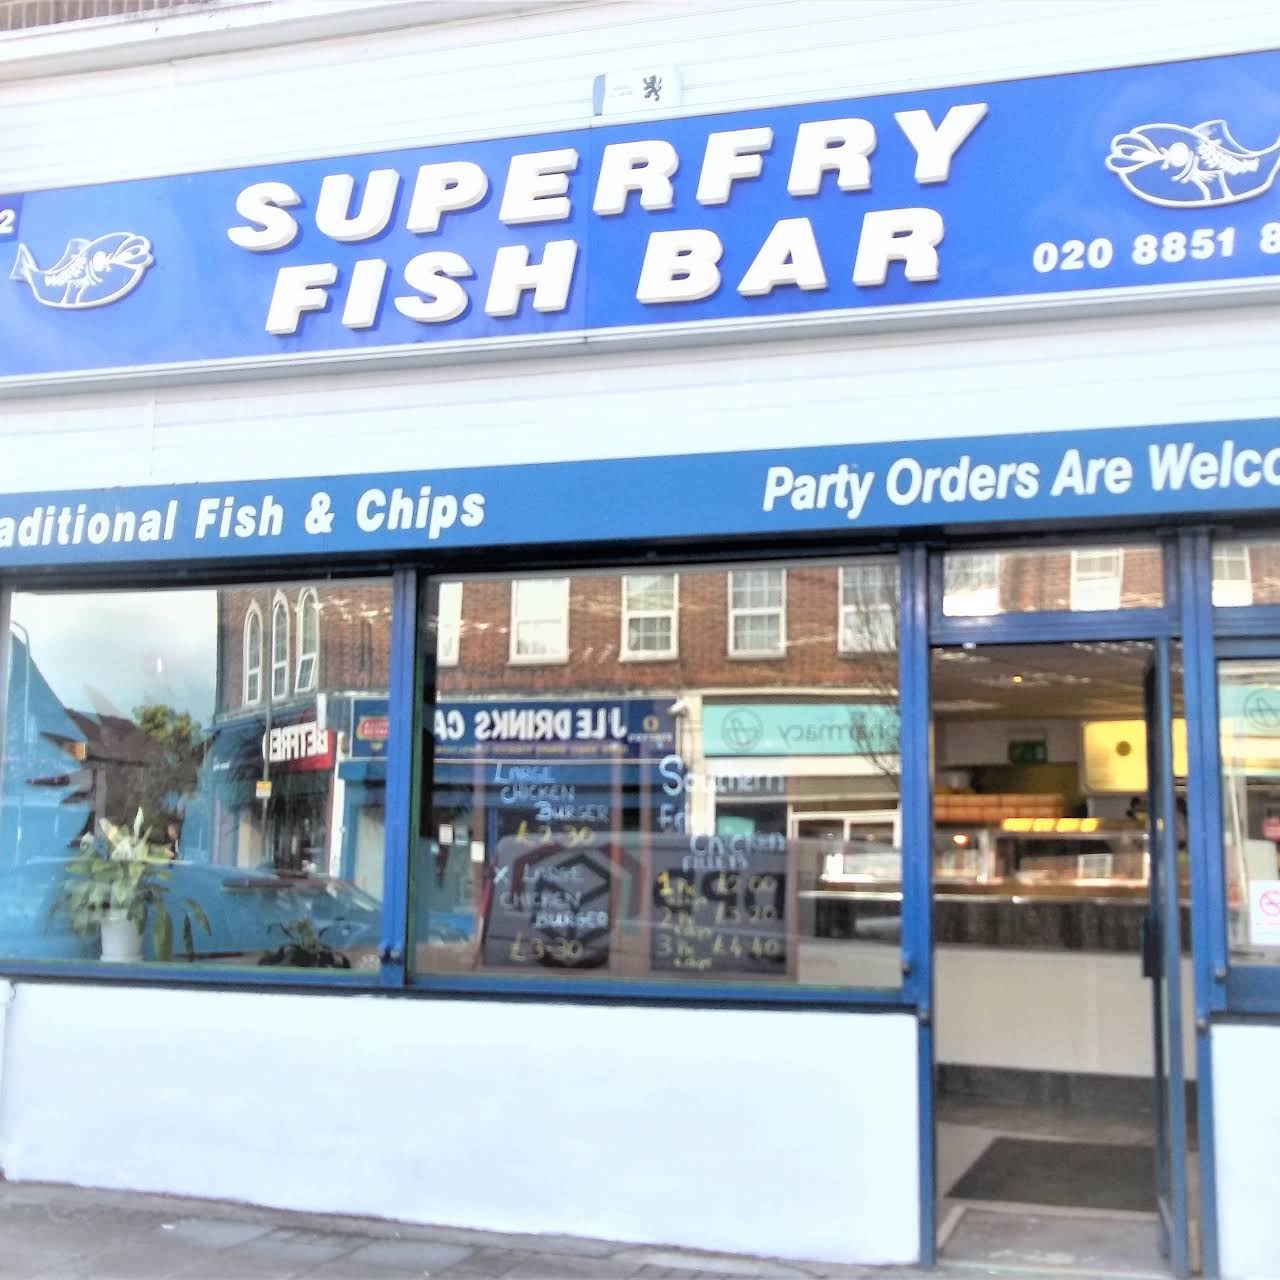 buy popular 7e5c2 23956 Superfry Fish Bar - Your Local Fish and Chips Takeaway